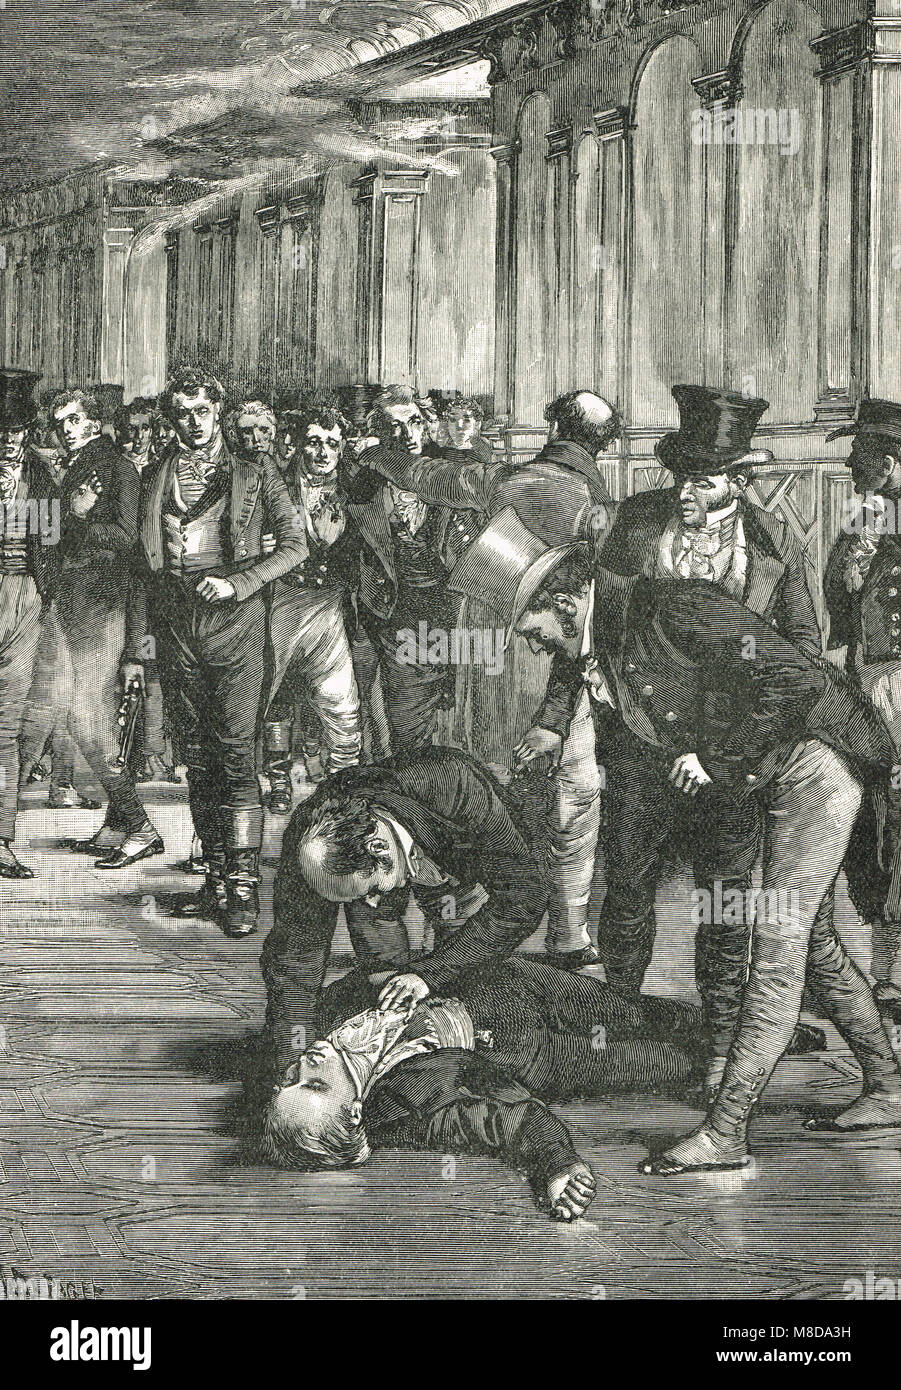 Spencer Perceval assassination, Prime Minister of the United Kingdom, shot and killed in the lobby of the House - Stock Image